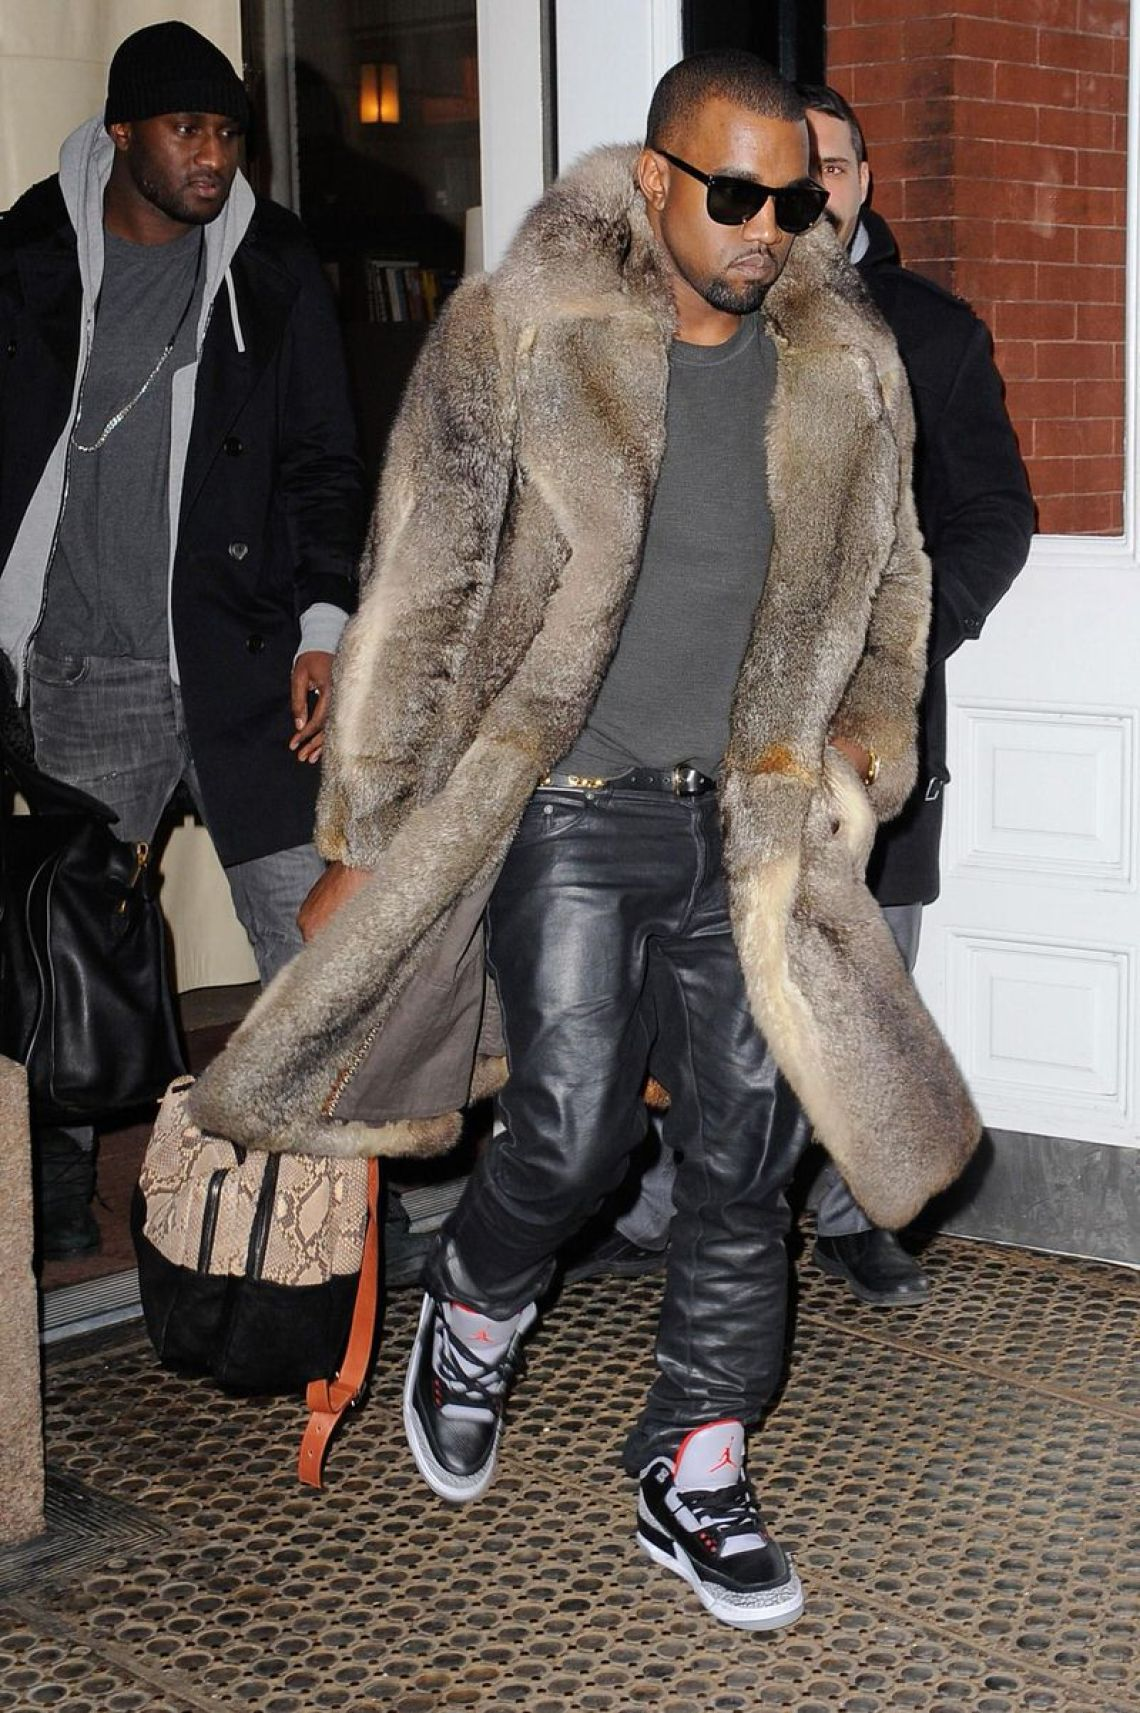 When the look of luxury was a fur coat, leather pants, and Jordan 3's.